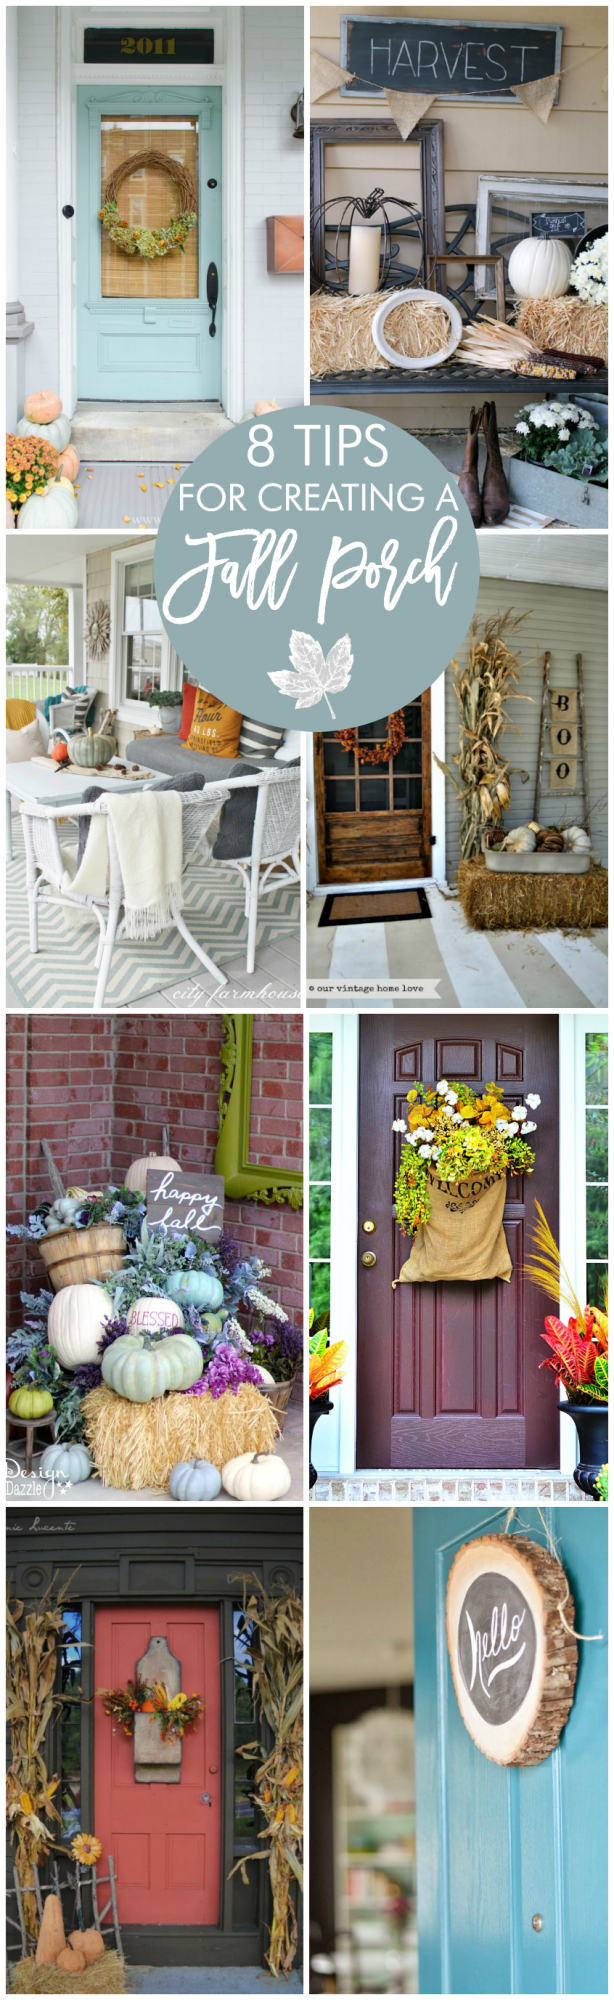 great-decorating-tips-for-creating-a-fall-porch